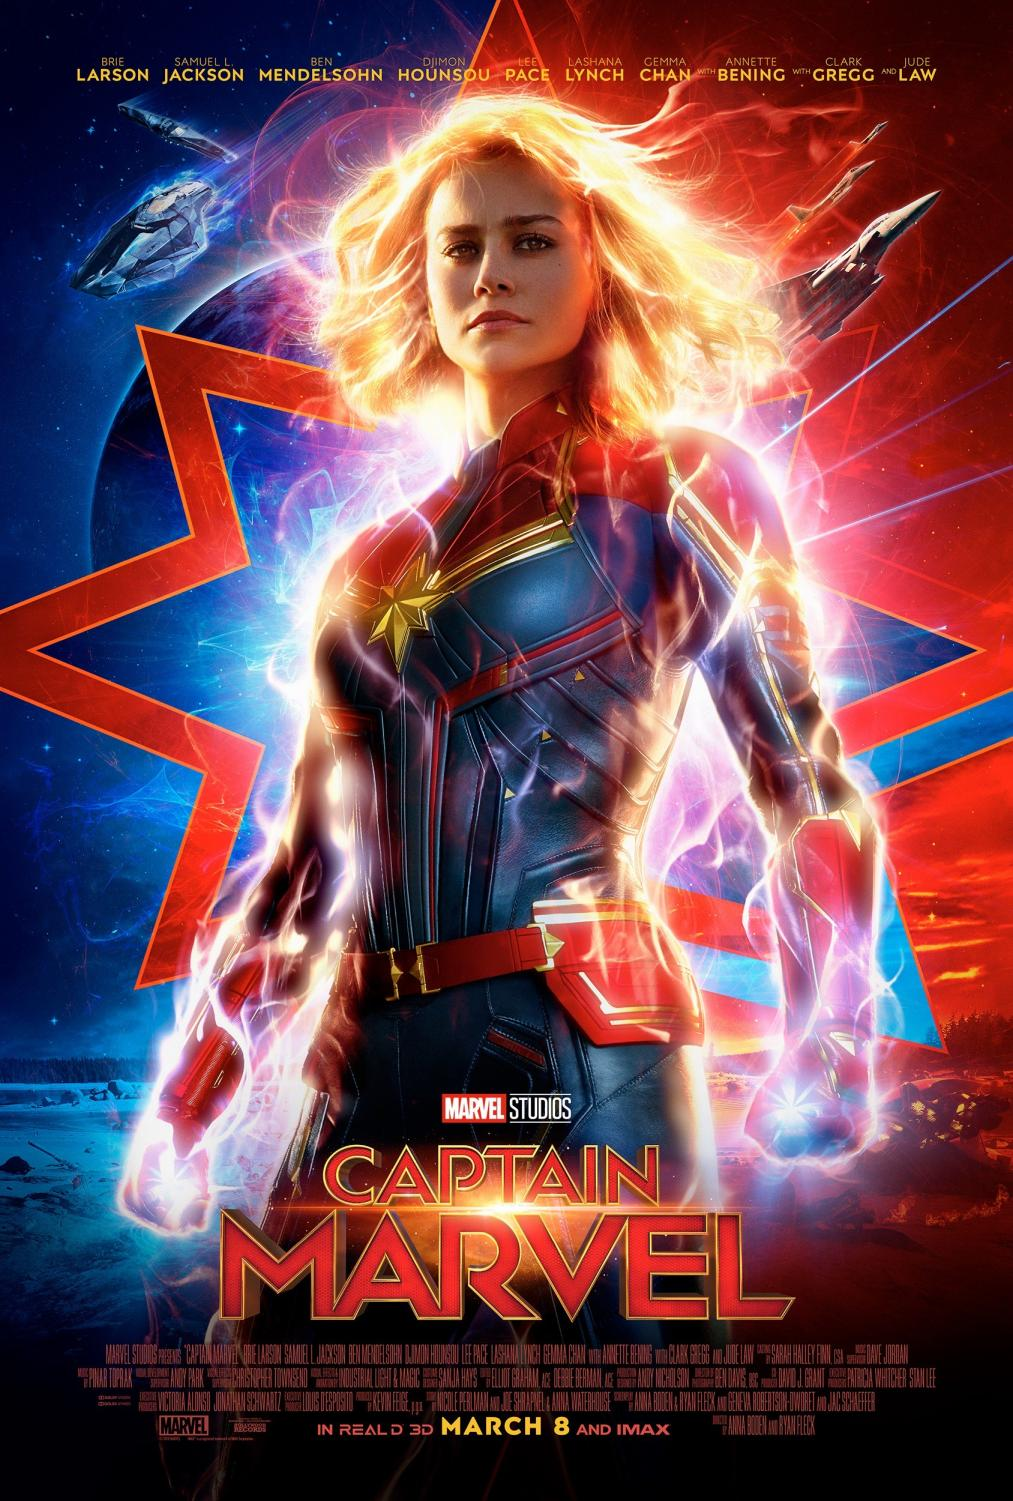 Captain Marvel is an interesting movie showcasing a strong female protagonist.  It also helps tie up loose ends before the release of Avengers Endgame.